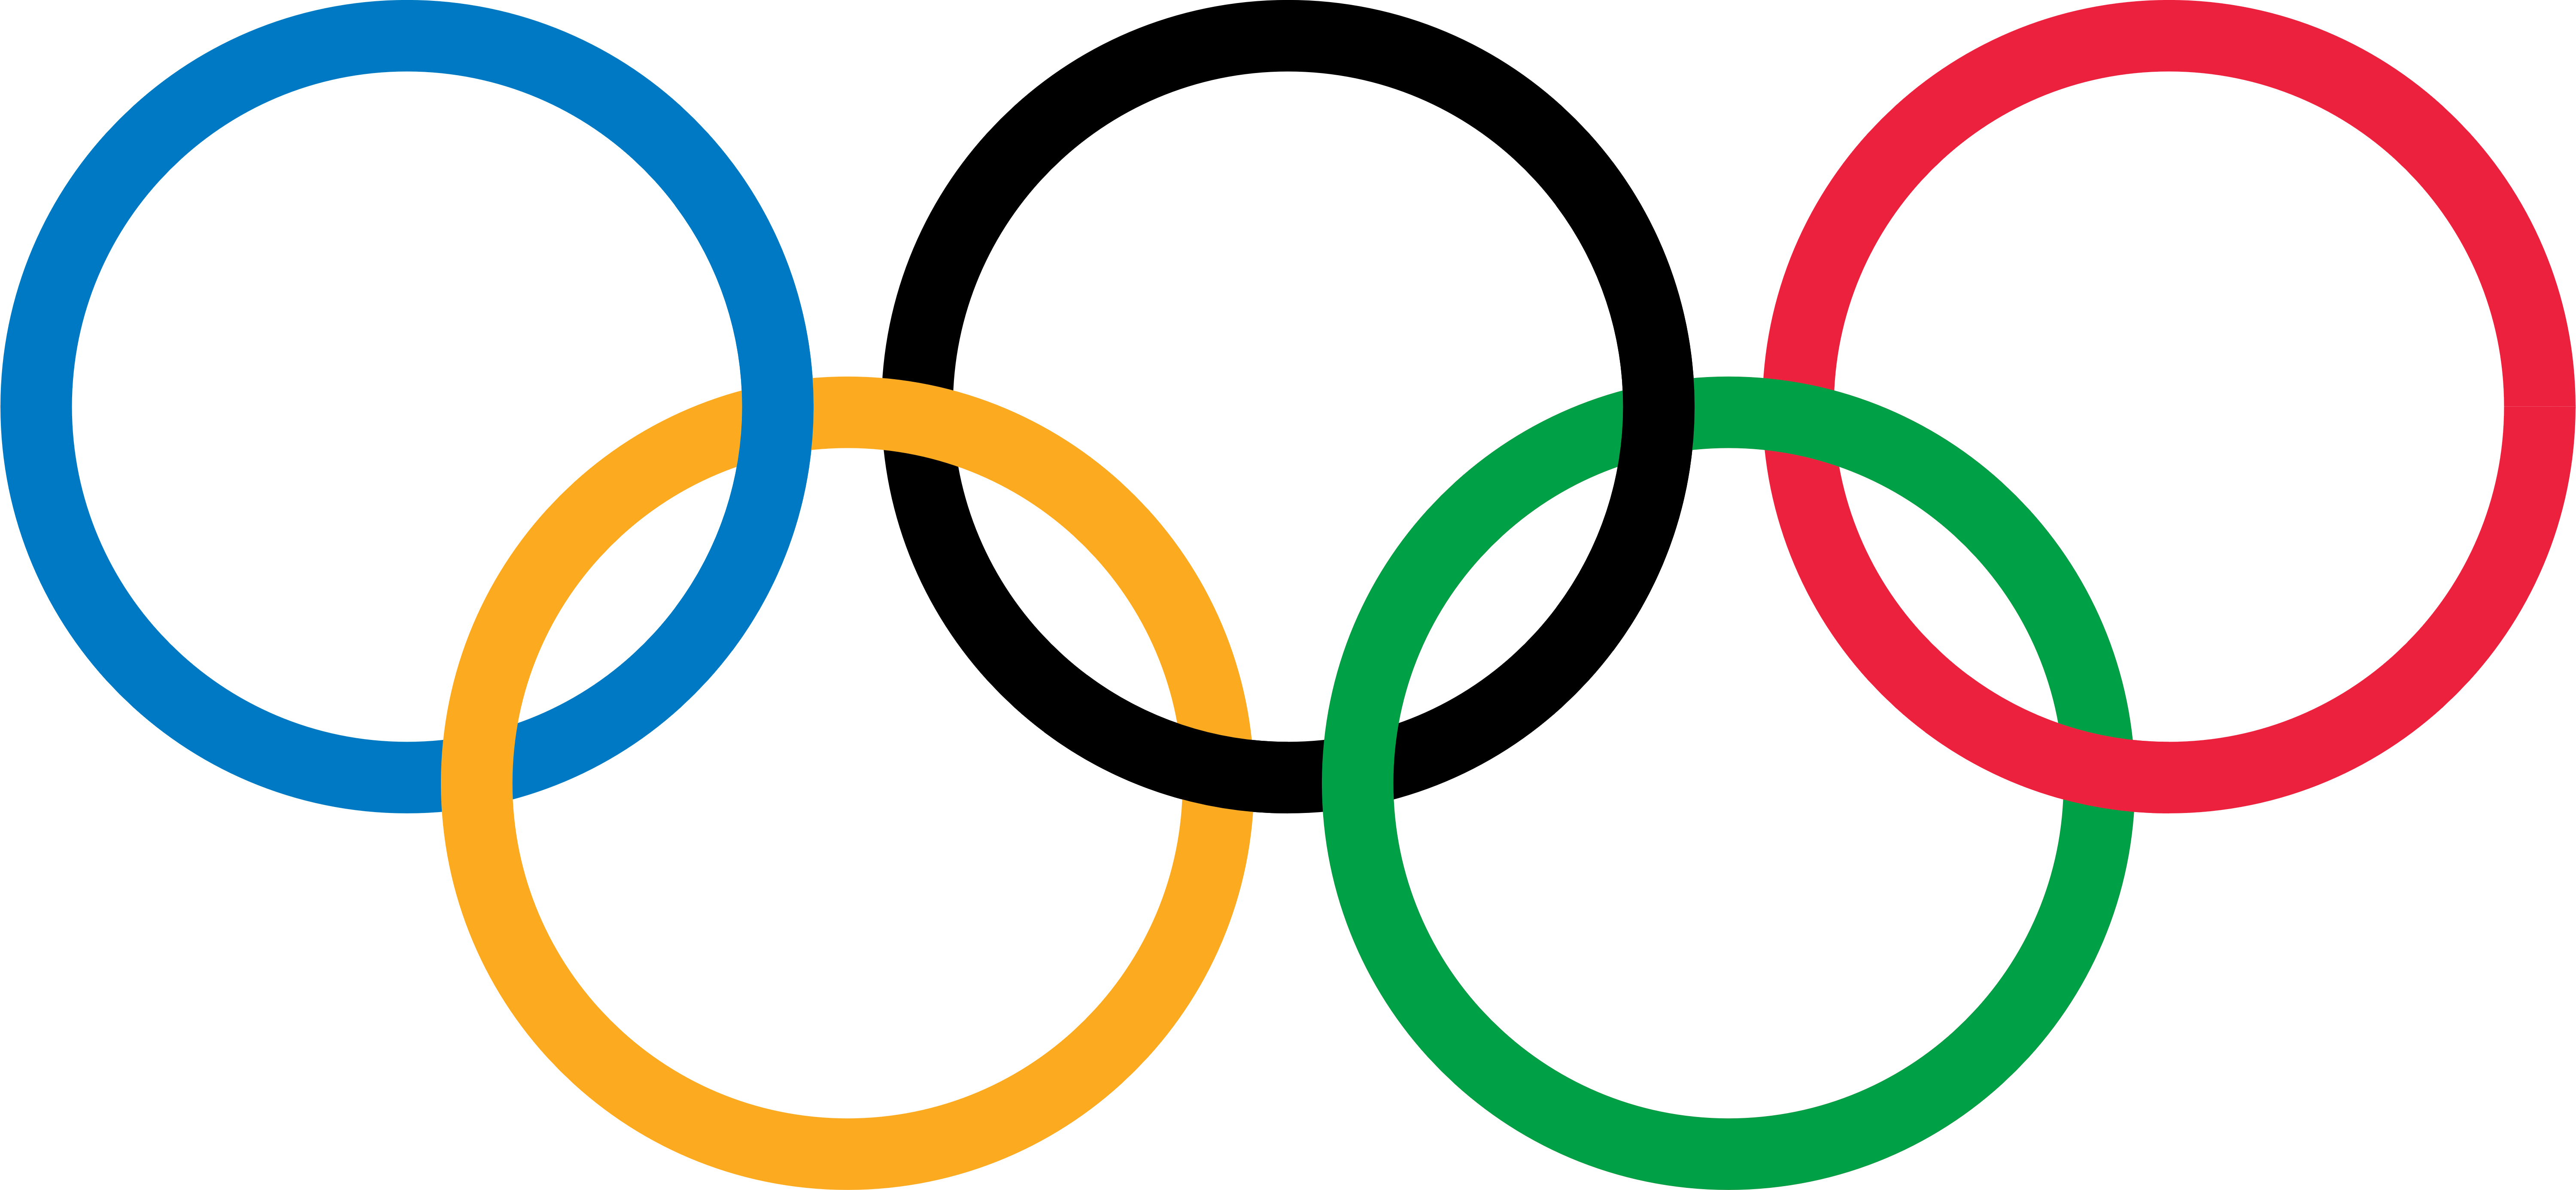 Download Olympic Symbols Png Image For Free Olympic Games Olympic Logo Summer Olympics